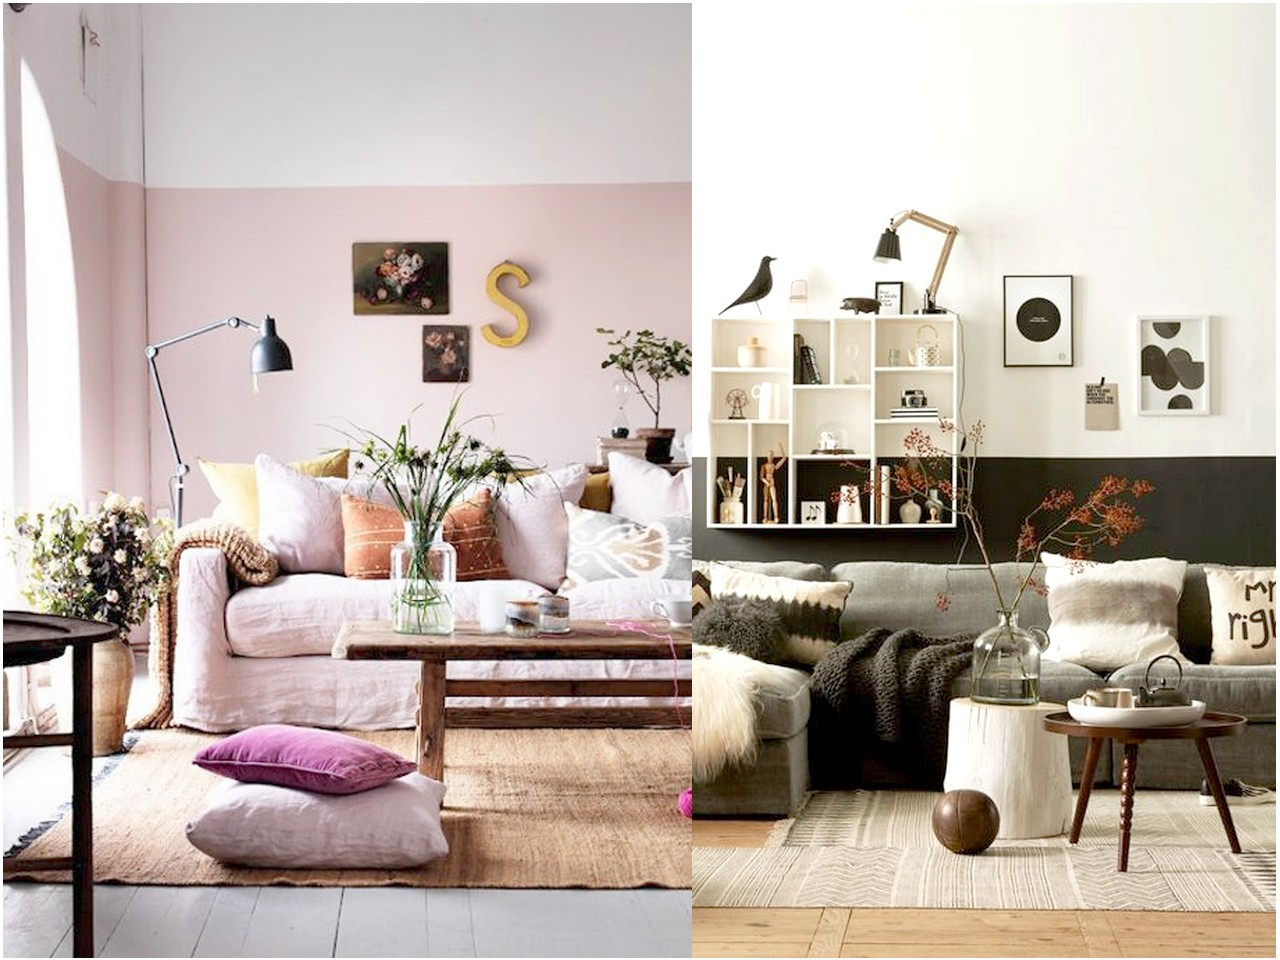 7 ideas para decorar con poco dinero el sal n de tu casa for Ideas lindas para decorar la casa